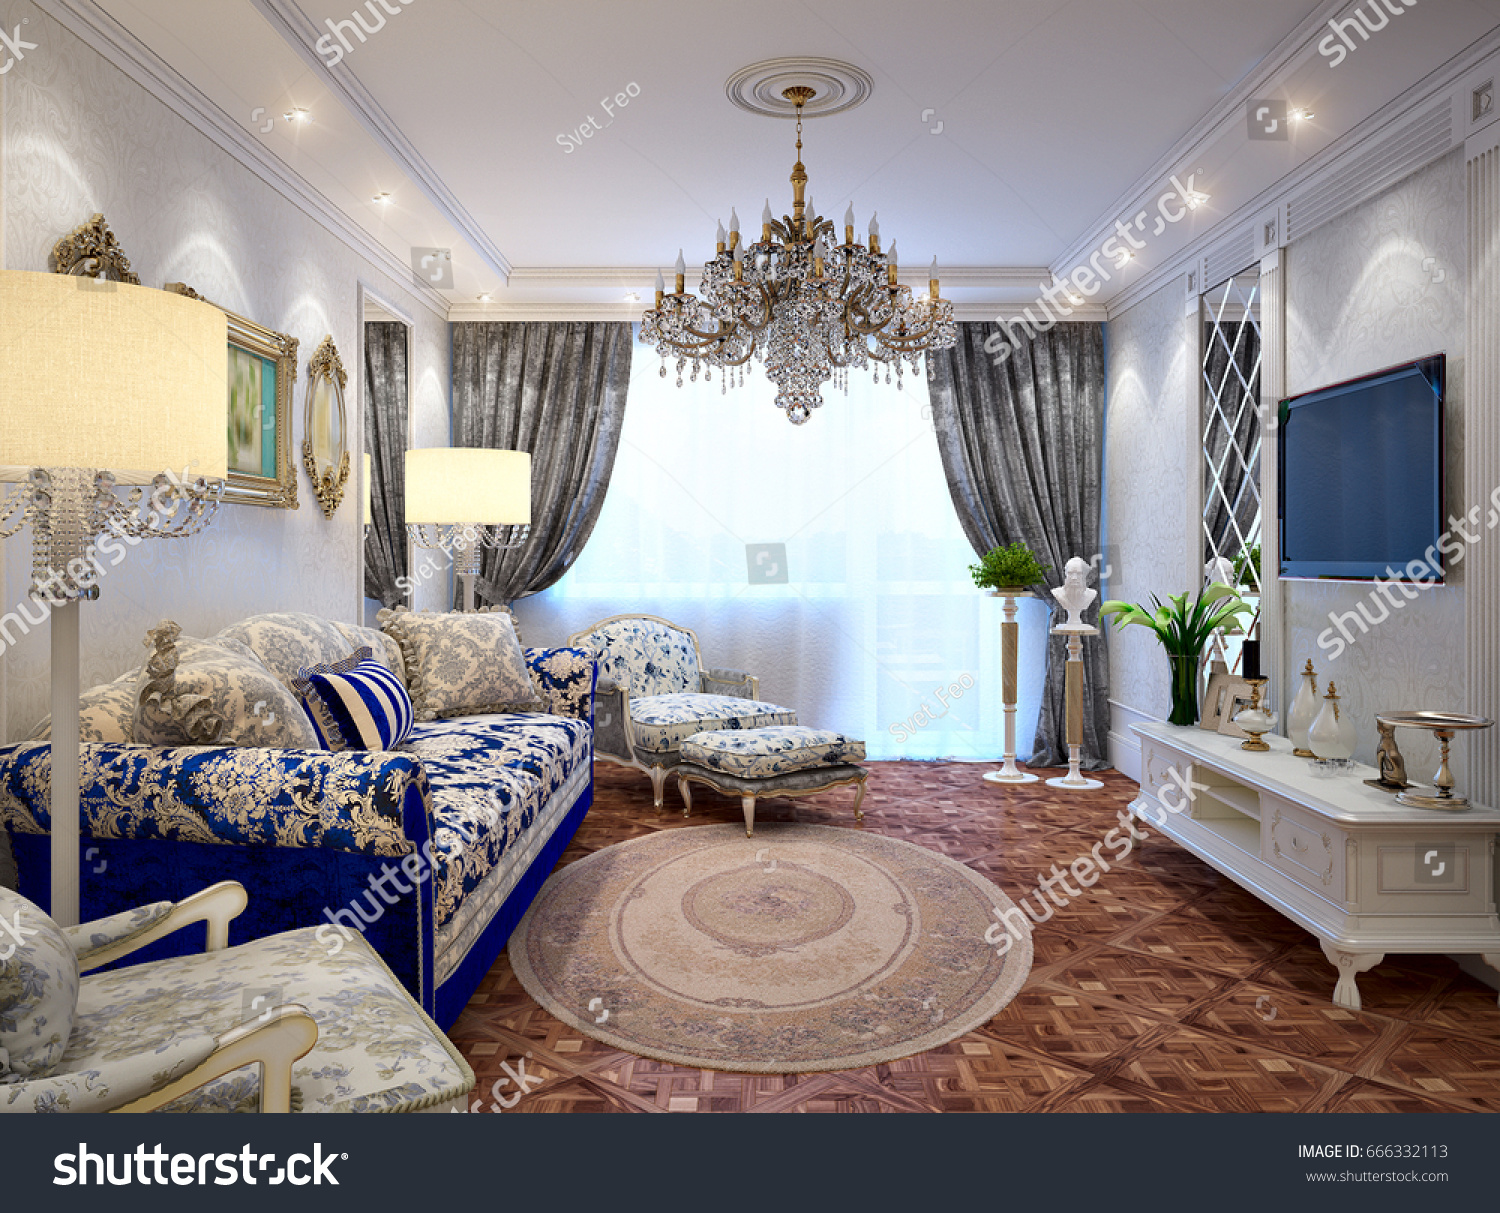 luxurious classic baroque living room interior design with mirrors wooden parquet floors white furniture